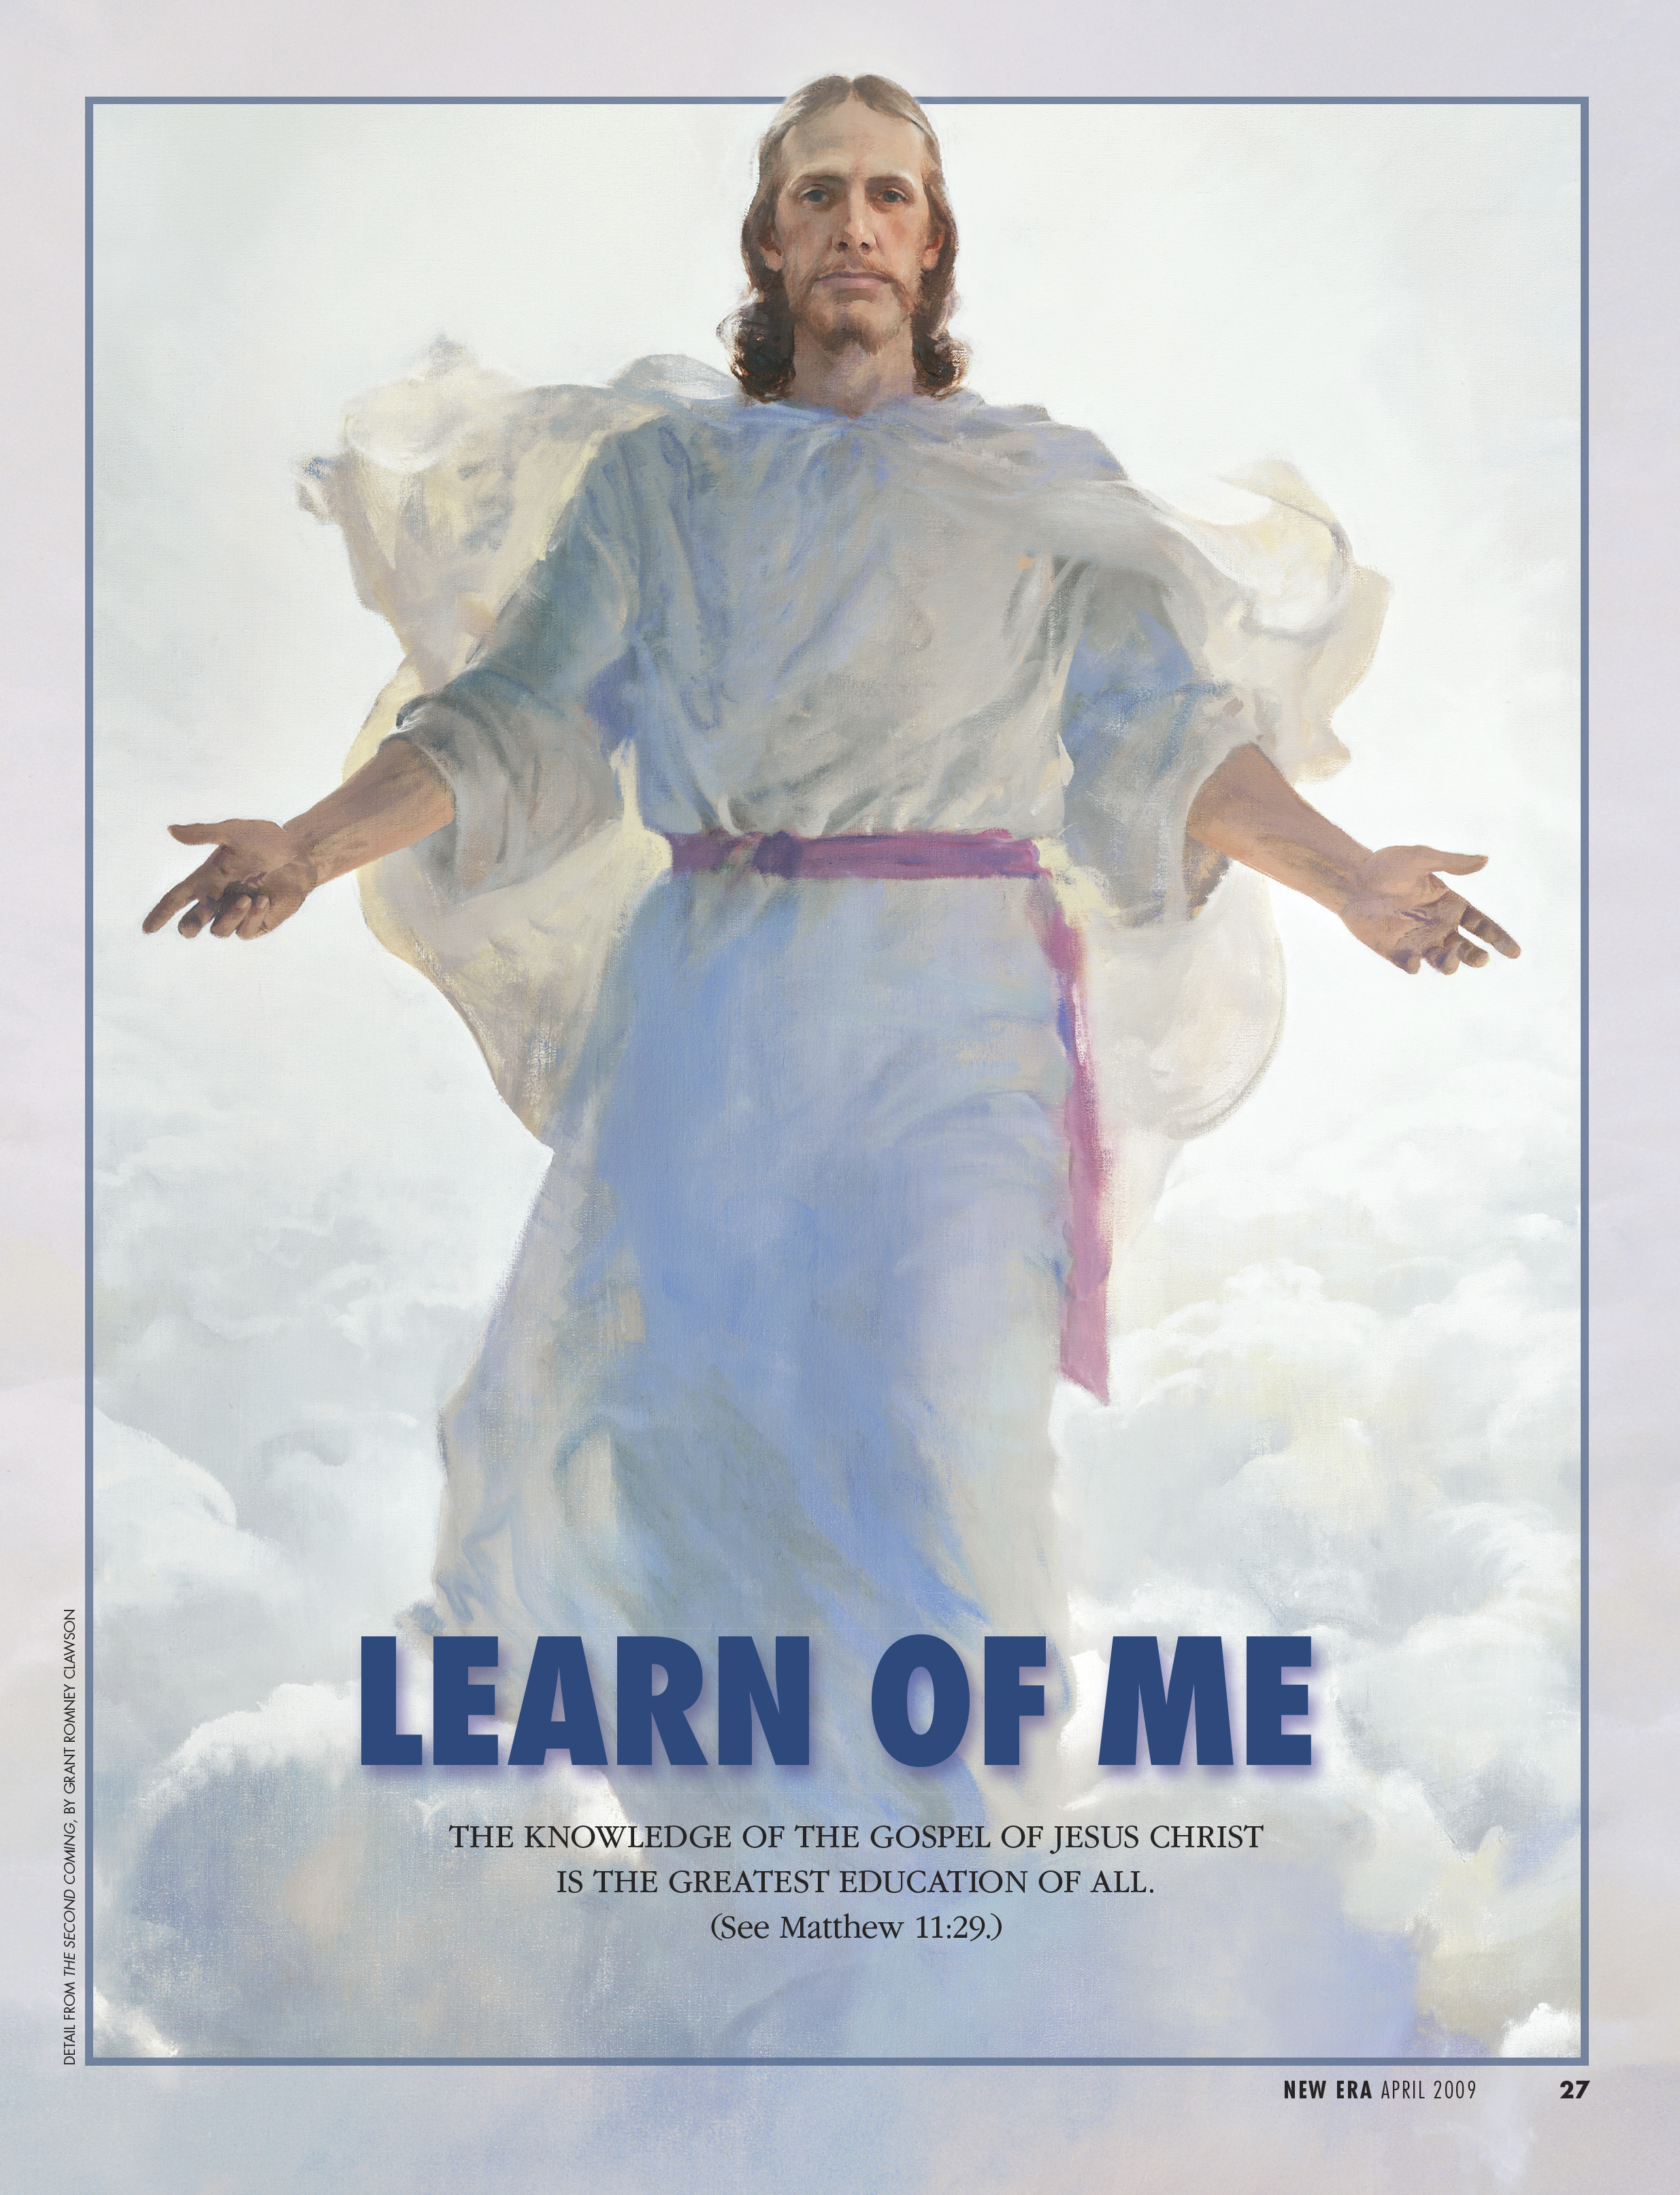 Learn of Me. The knowledge of the gospel of Jesus Christ is the greatest education of all. (See Matthew 11:29.) Apr. 2009 © undefined ipCode 1.